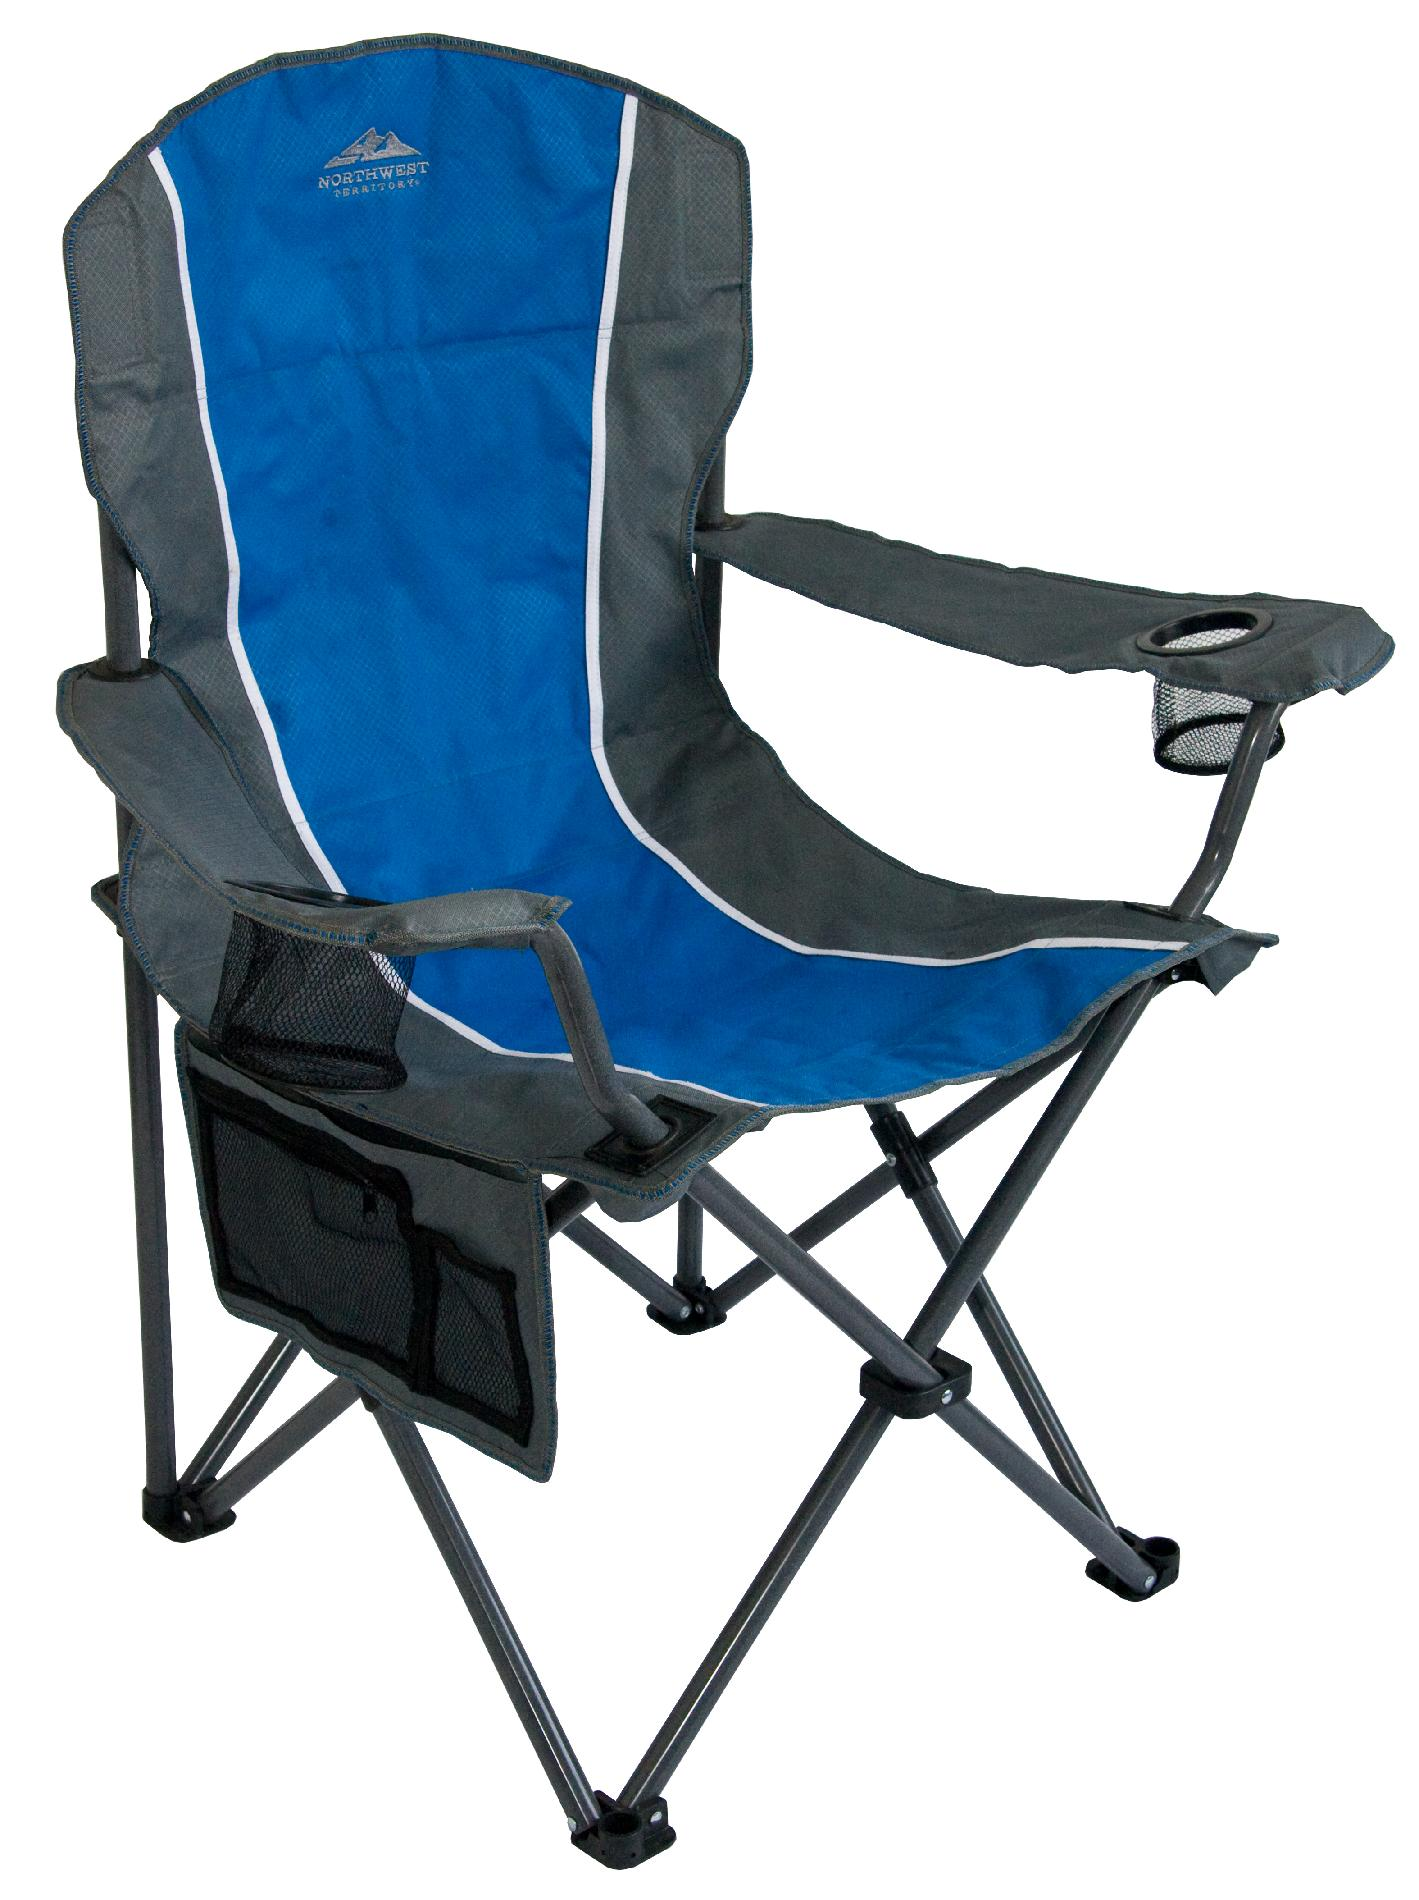 Oversized Patio Chairs Big Boy Xl Quad Chair Blue Rugged Oversized Outdoor